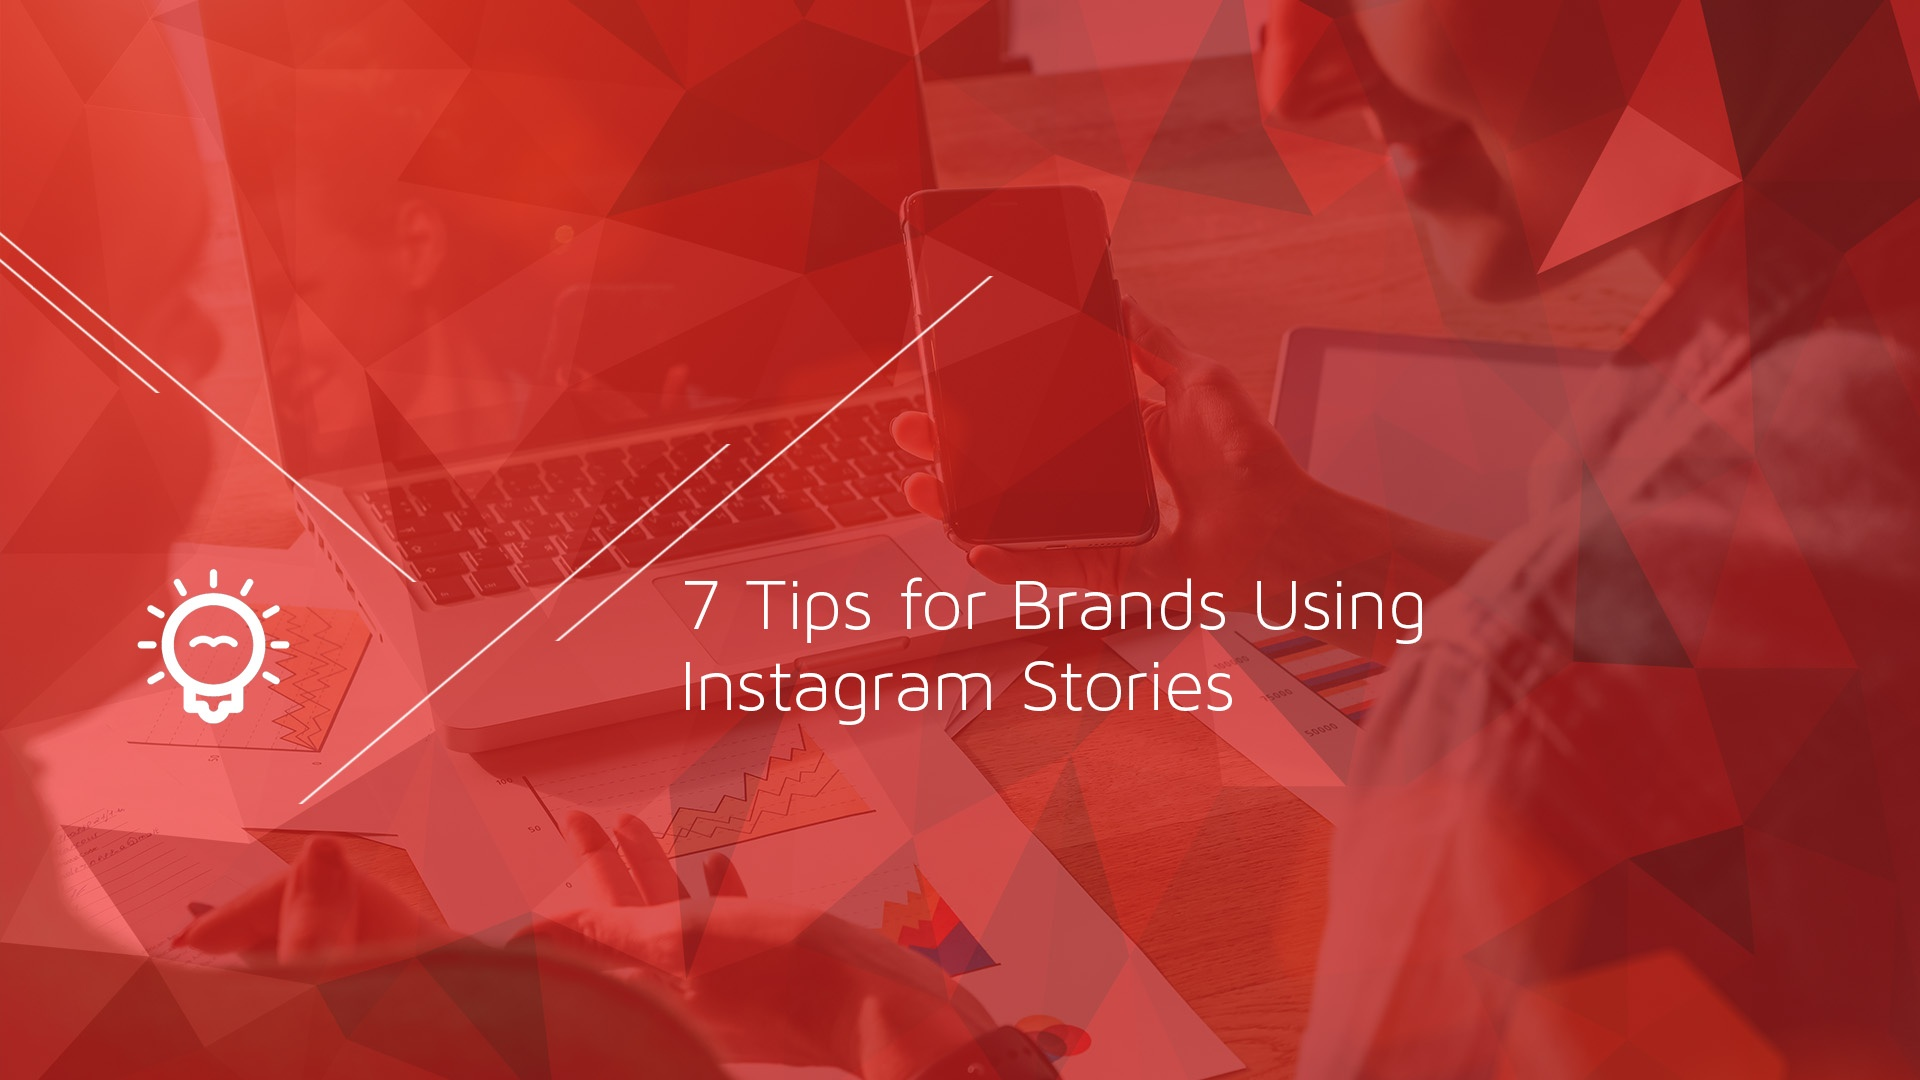 7 Tips for Brands Using Instagram Stories